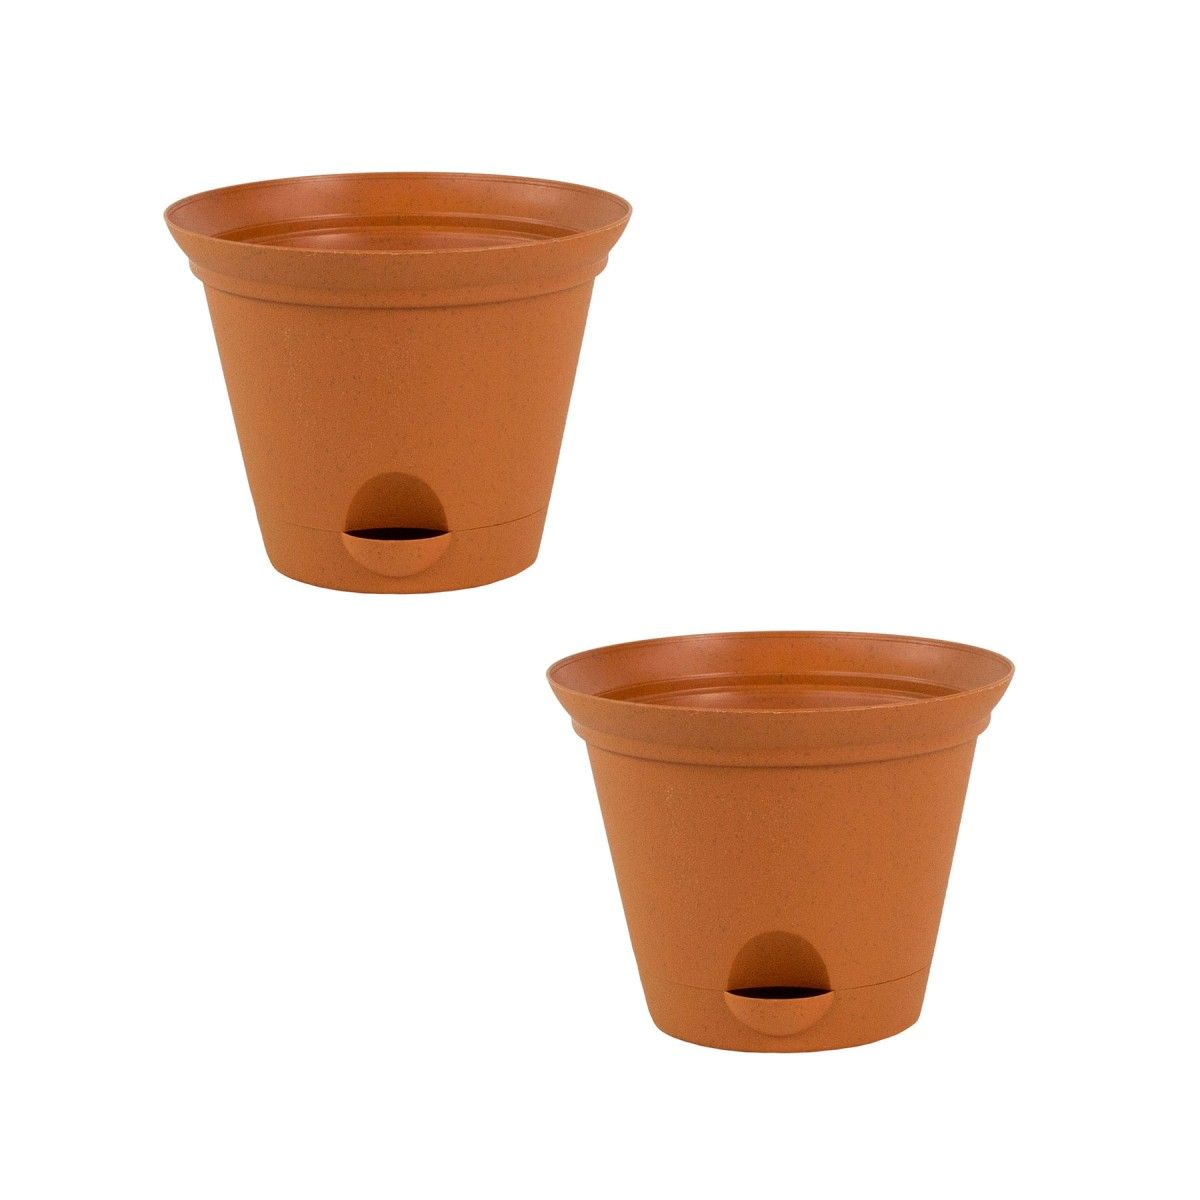 Misco 2 Pack Of 7 Inch Clay Quartz Plastic Self Watering Flare Flower Pot Or Garden Planter Discontinued No Longer Available Self Watering Planter Garden Planters Planters